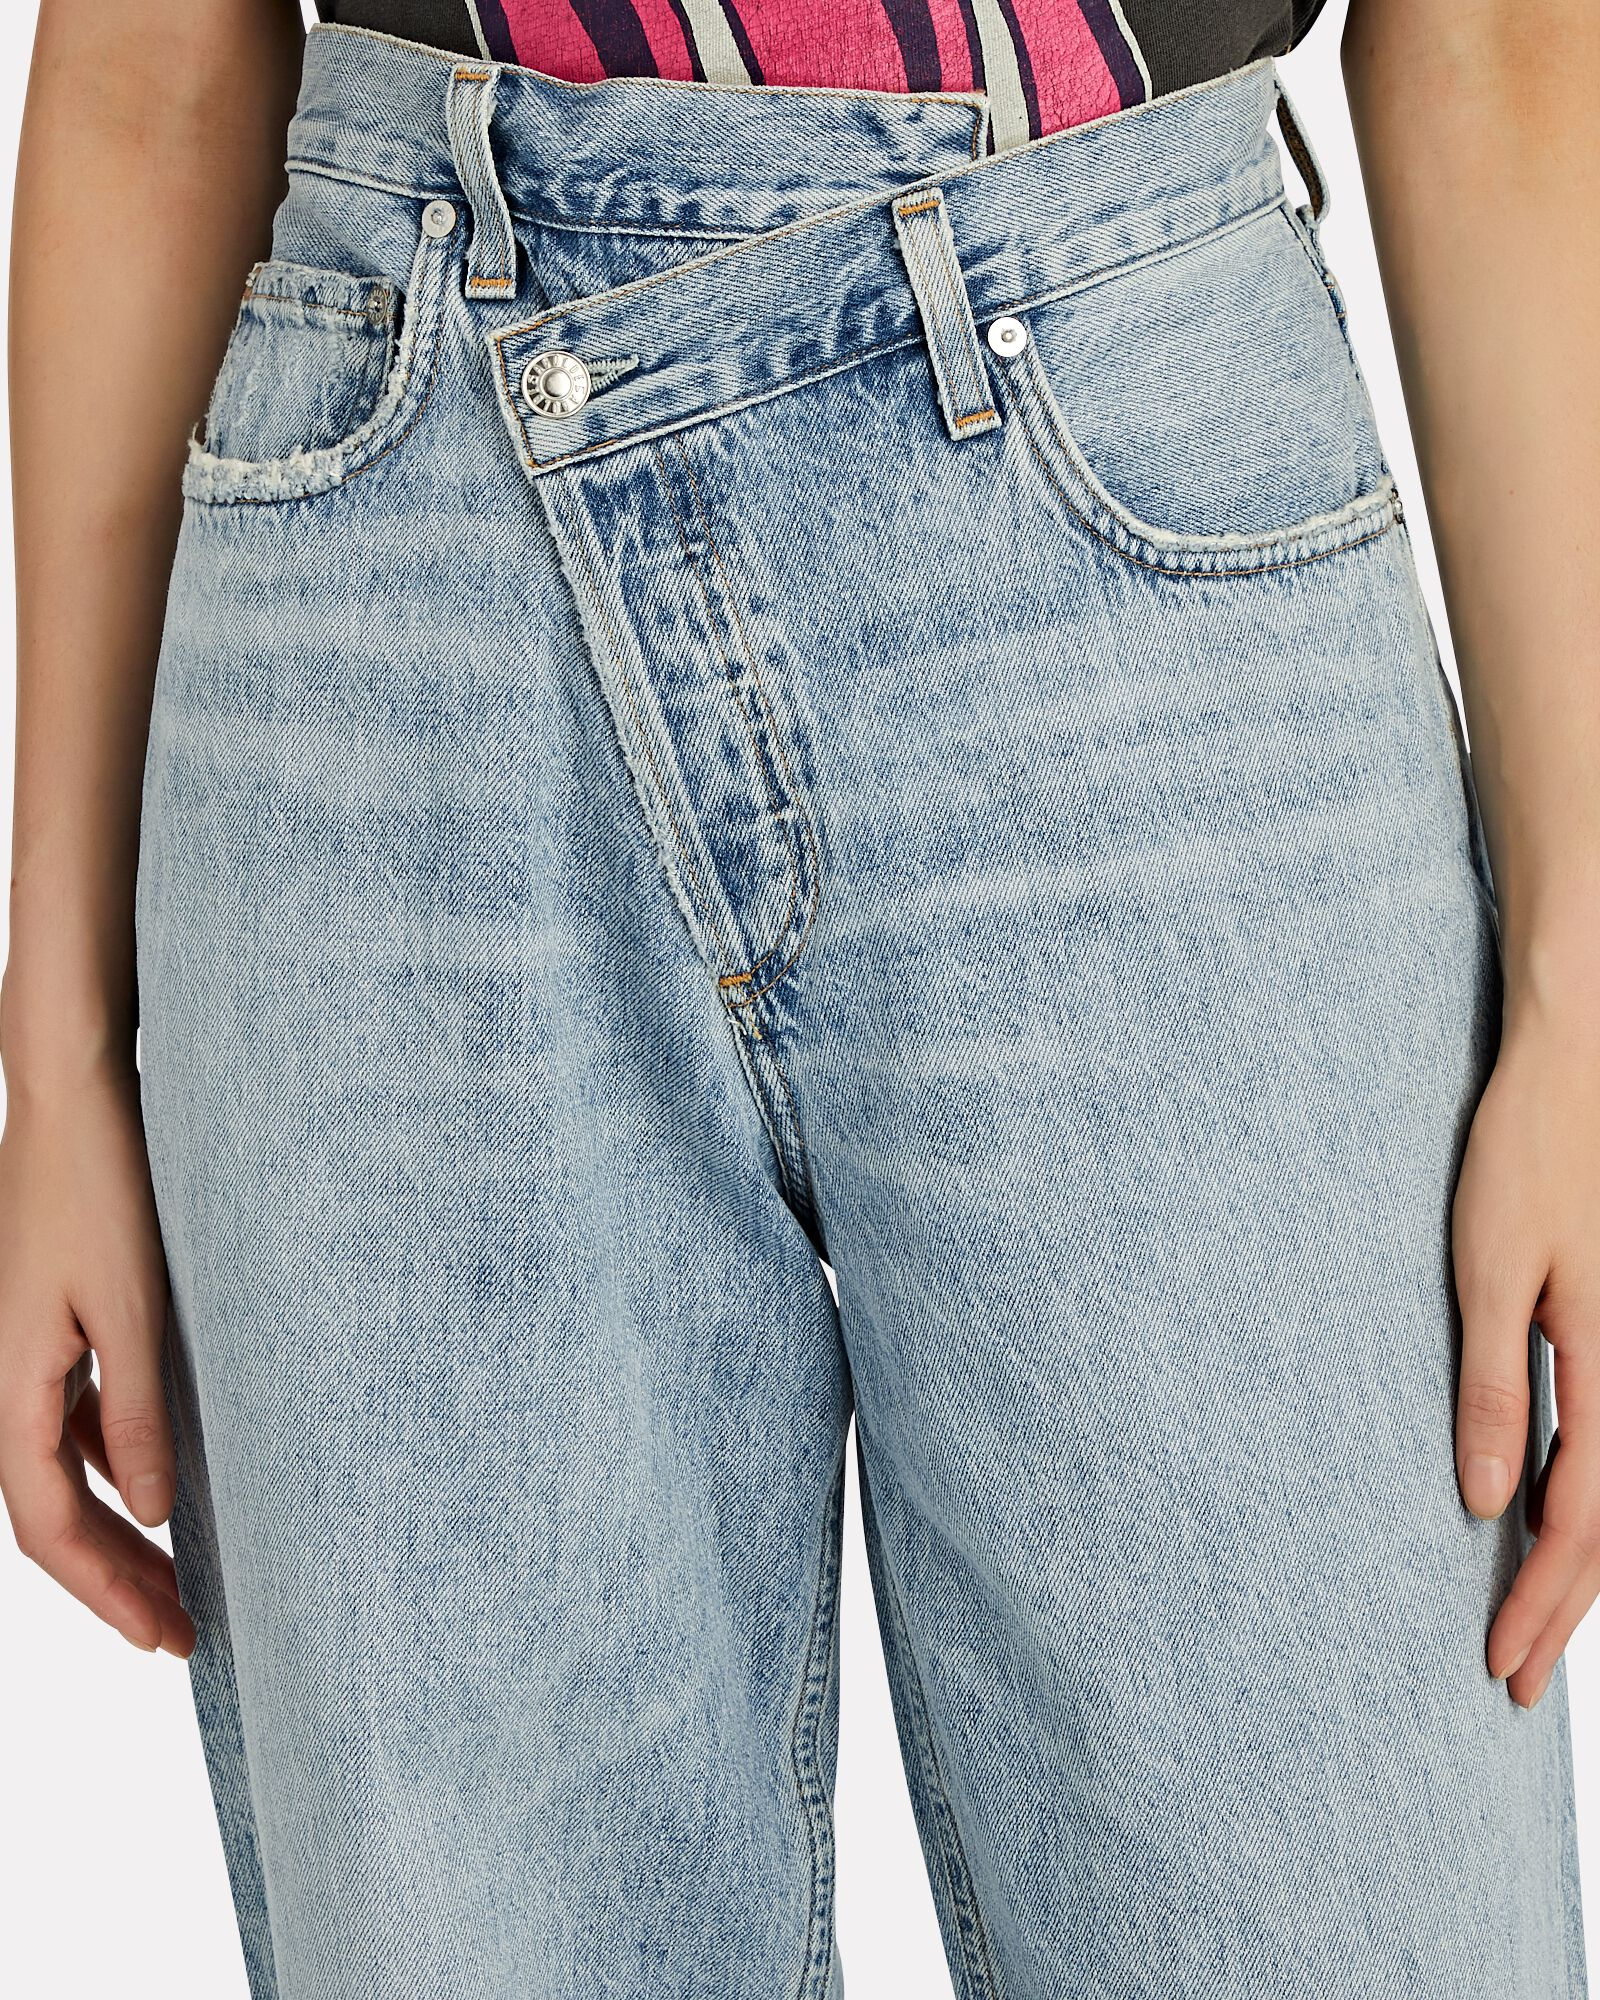 Criss Cross Upsized Jeans, SUBURBIA, hi-res